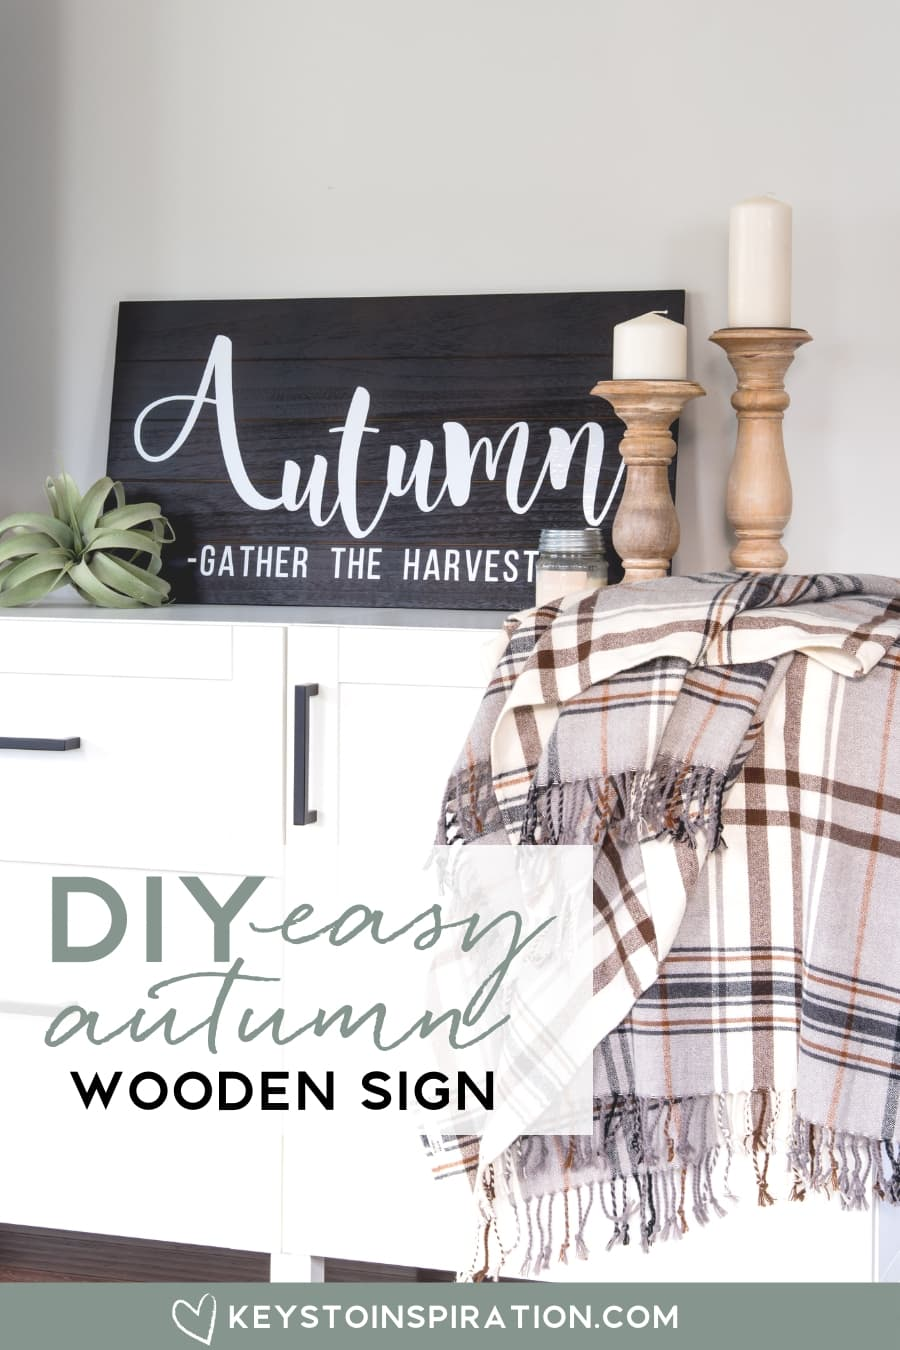 DIY easy autumn wooden sign home decor for fall